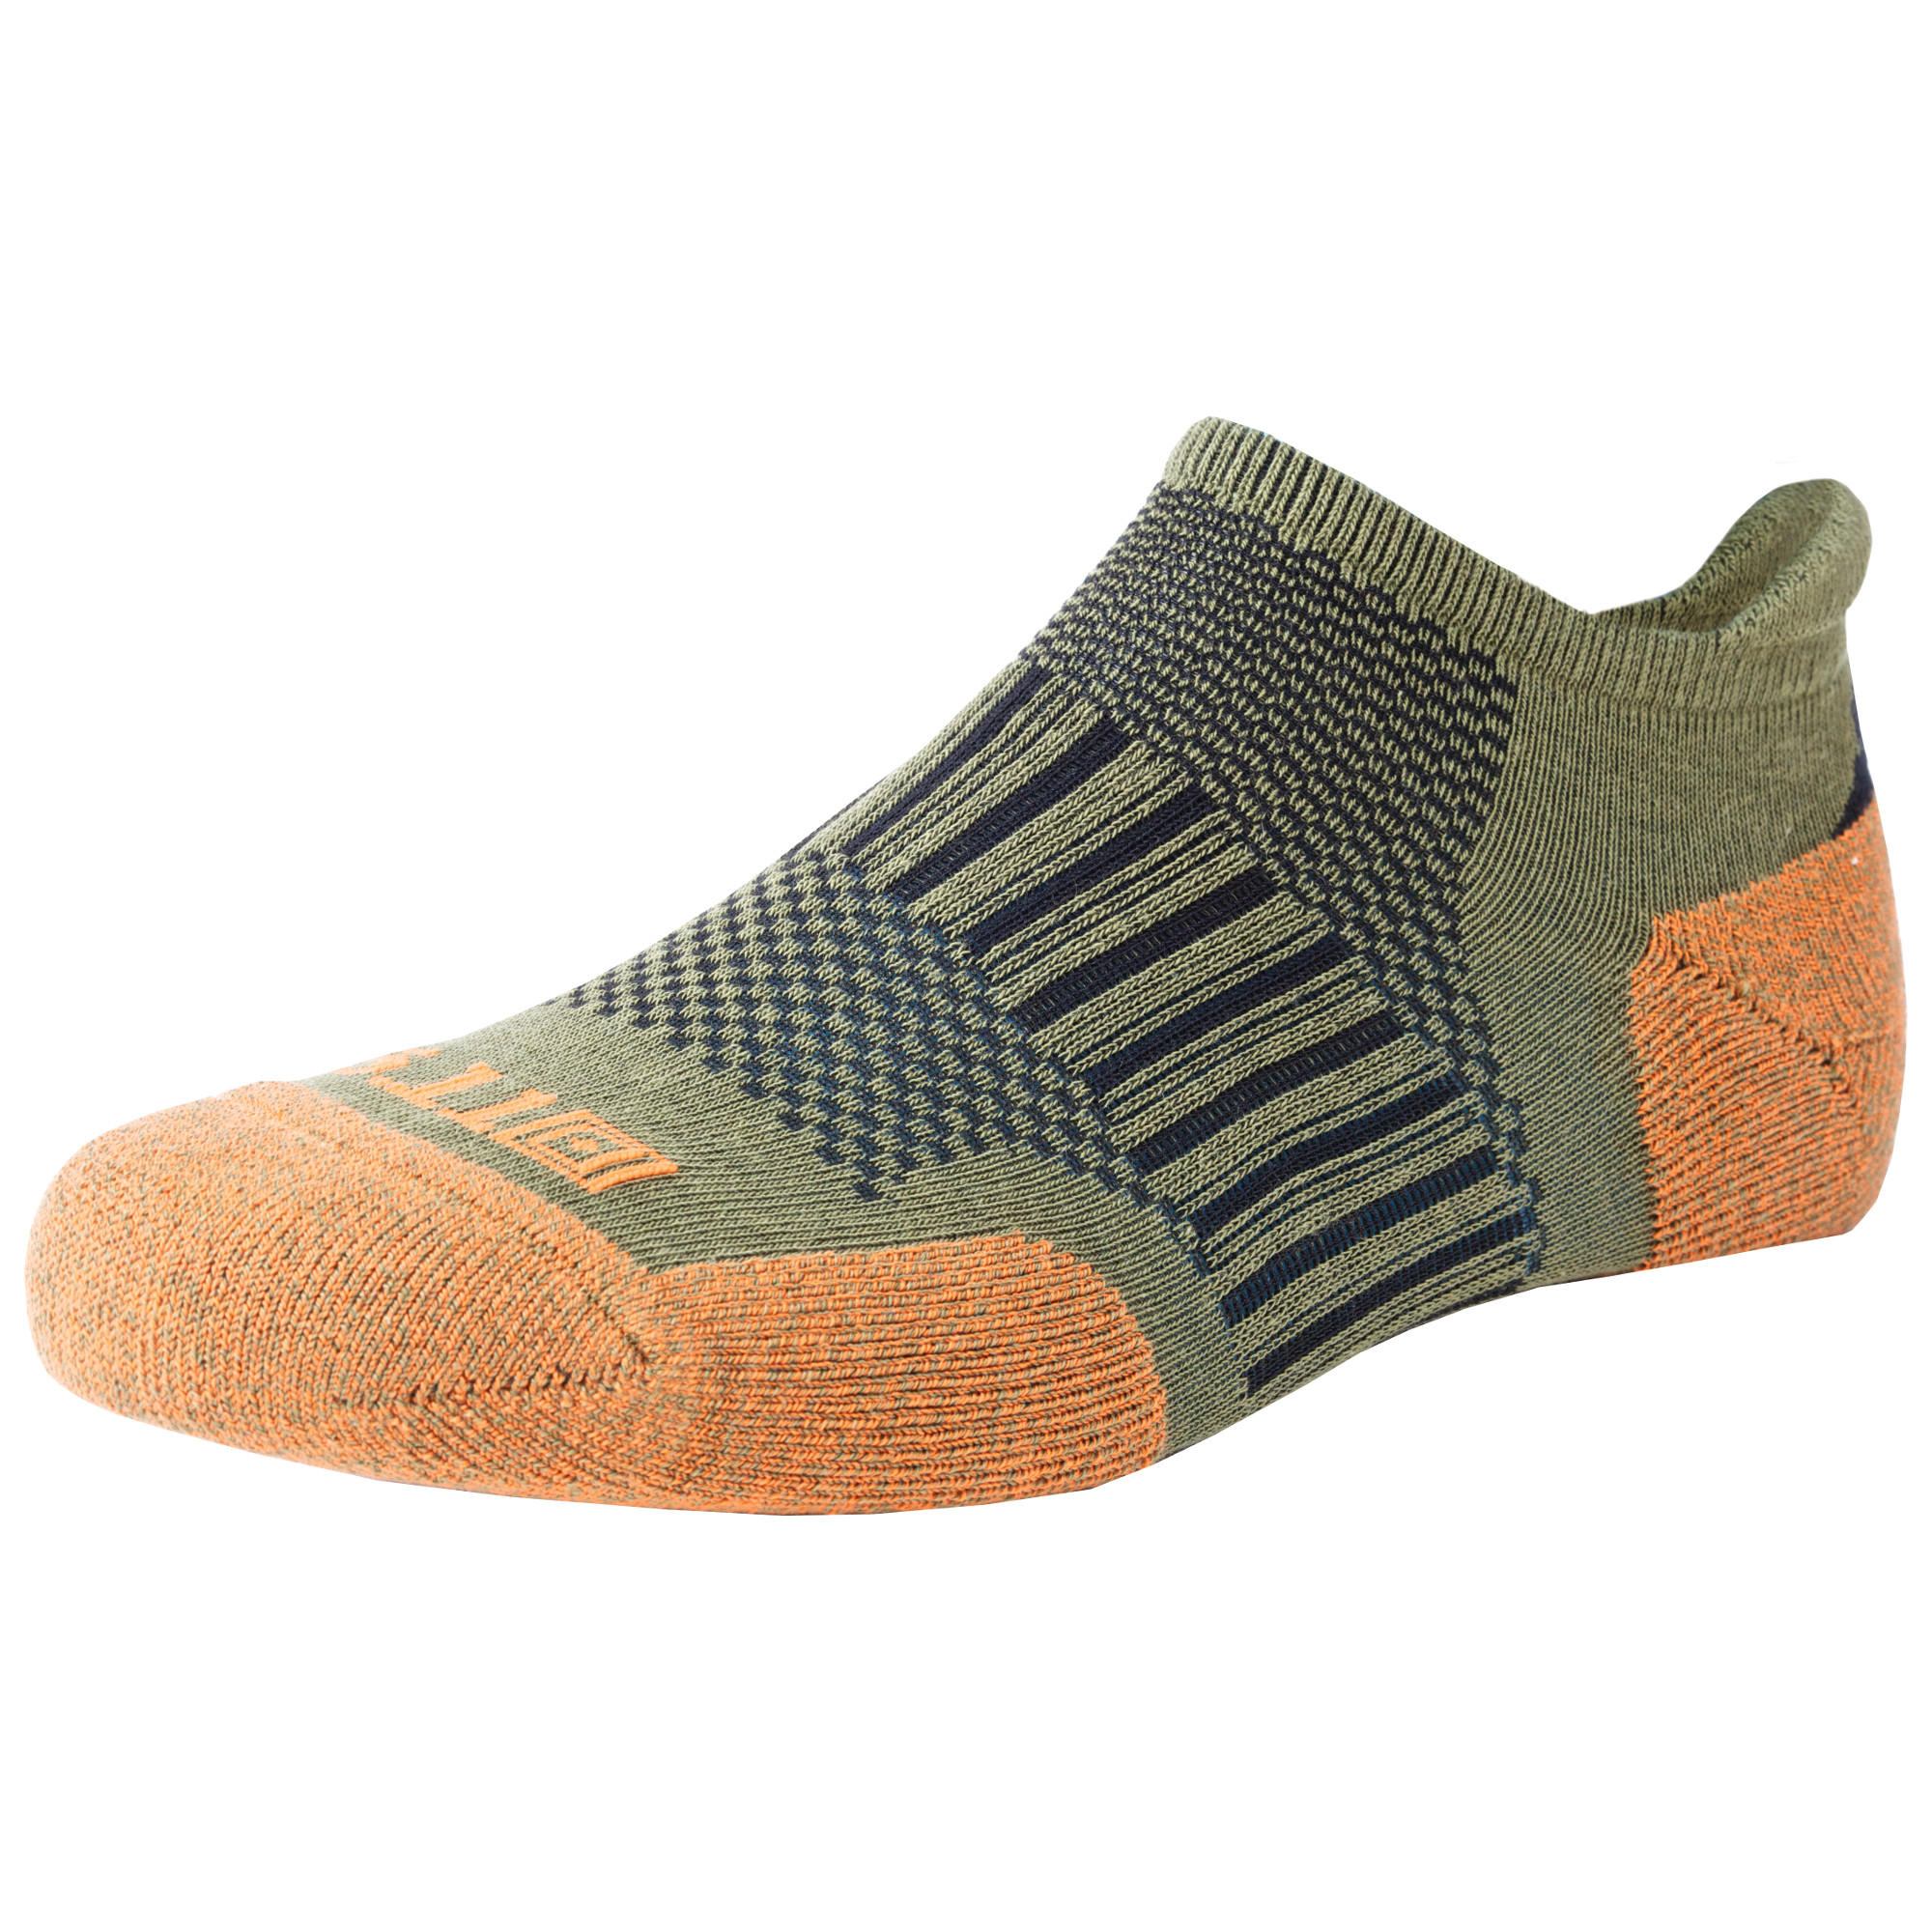 5.11 Recon Ankle Sock Style 10010